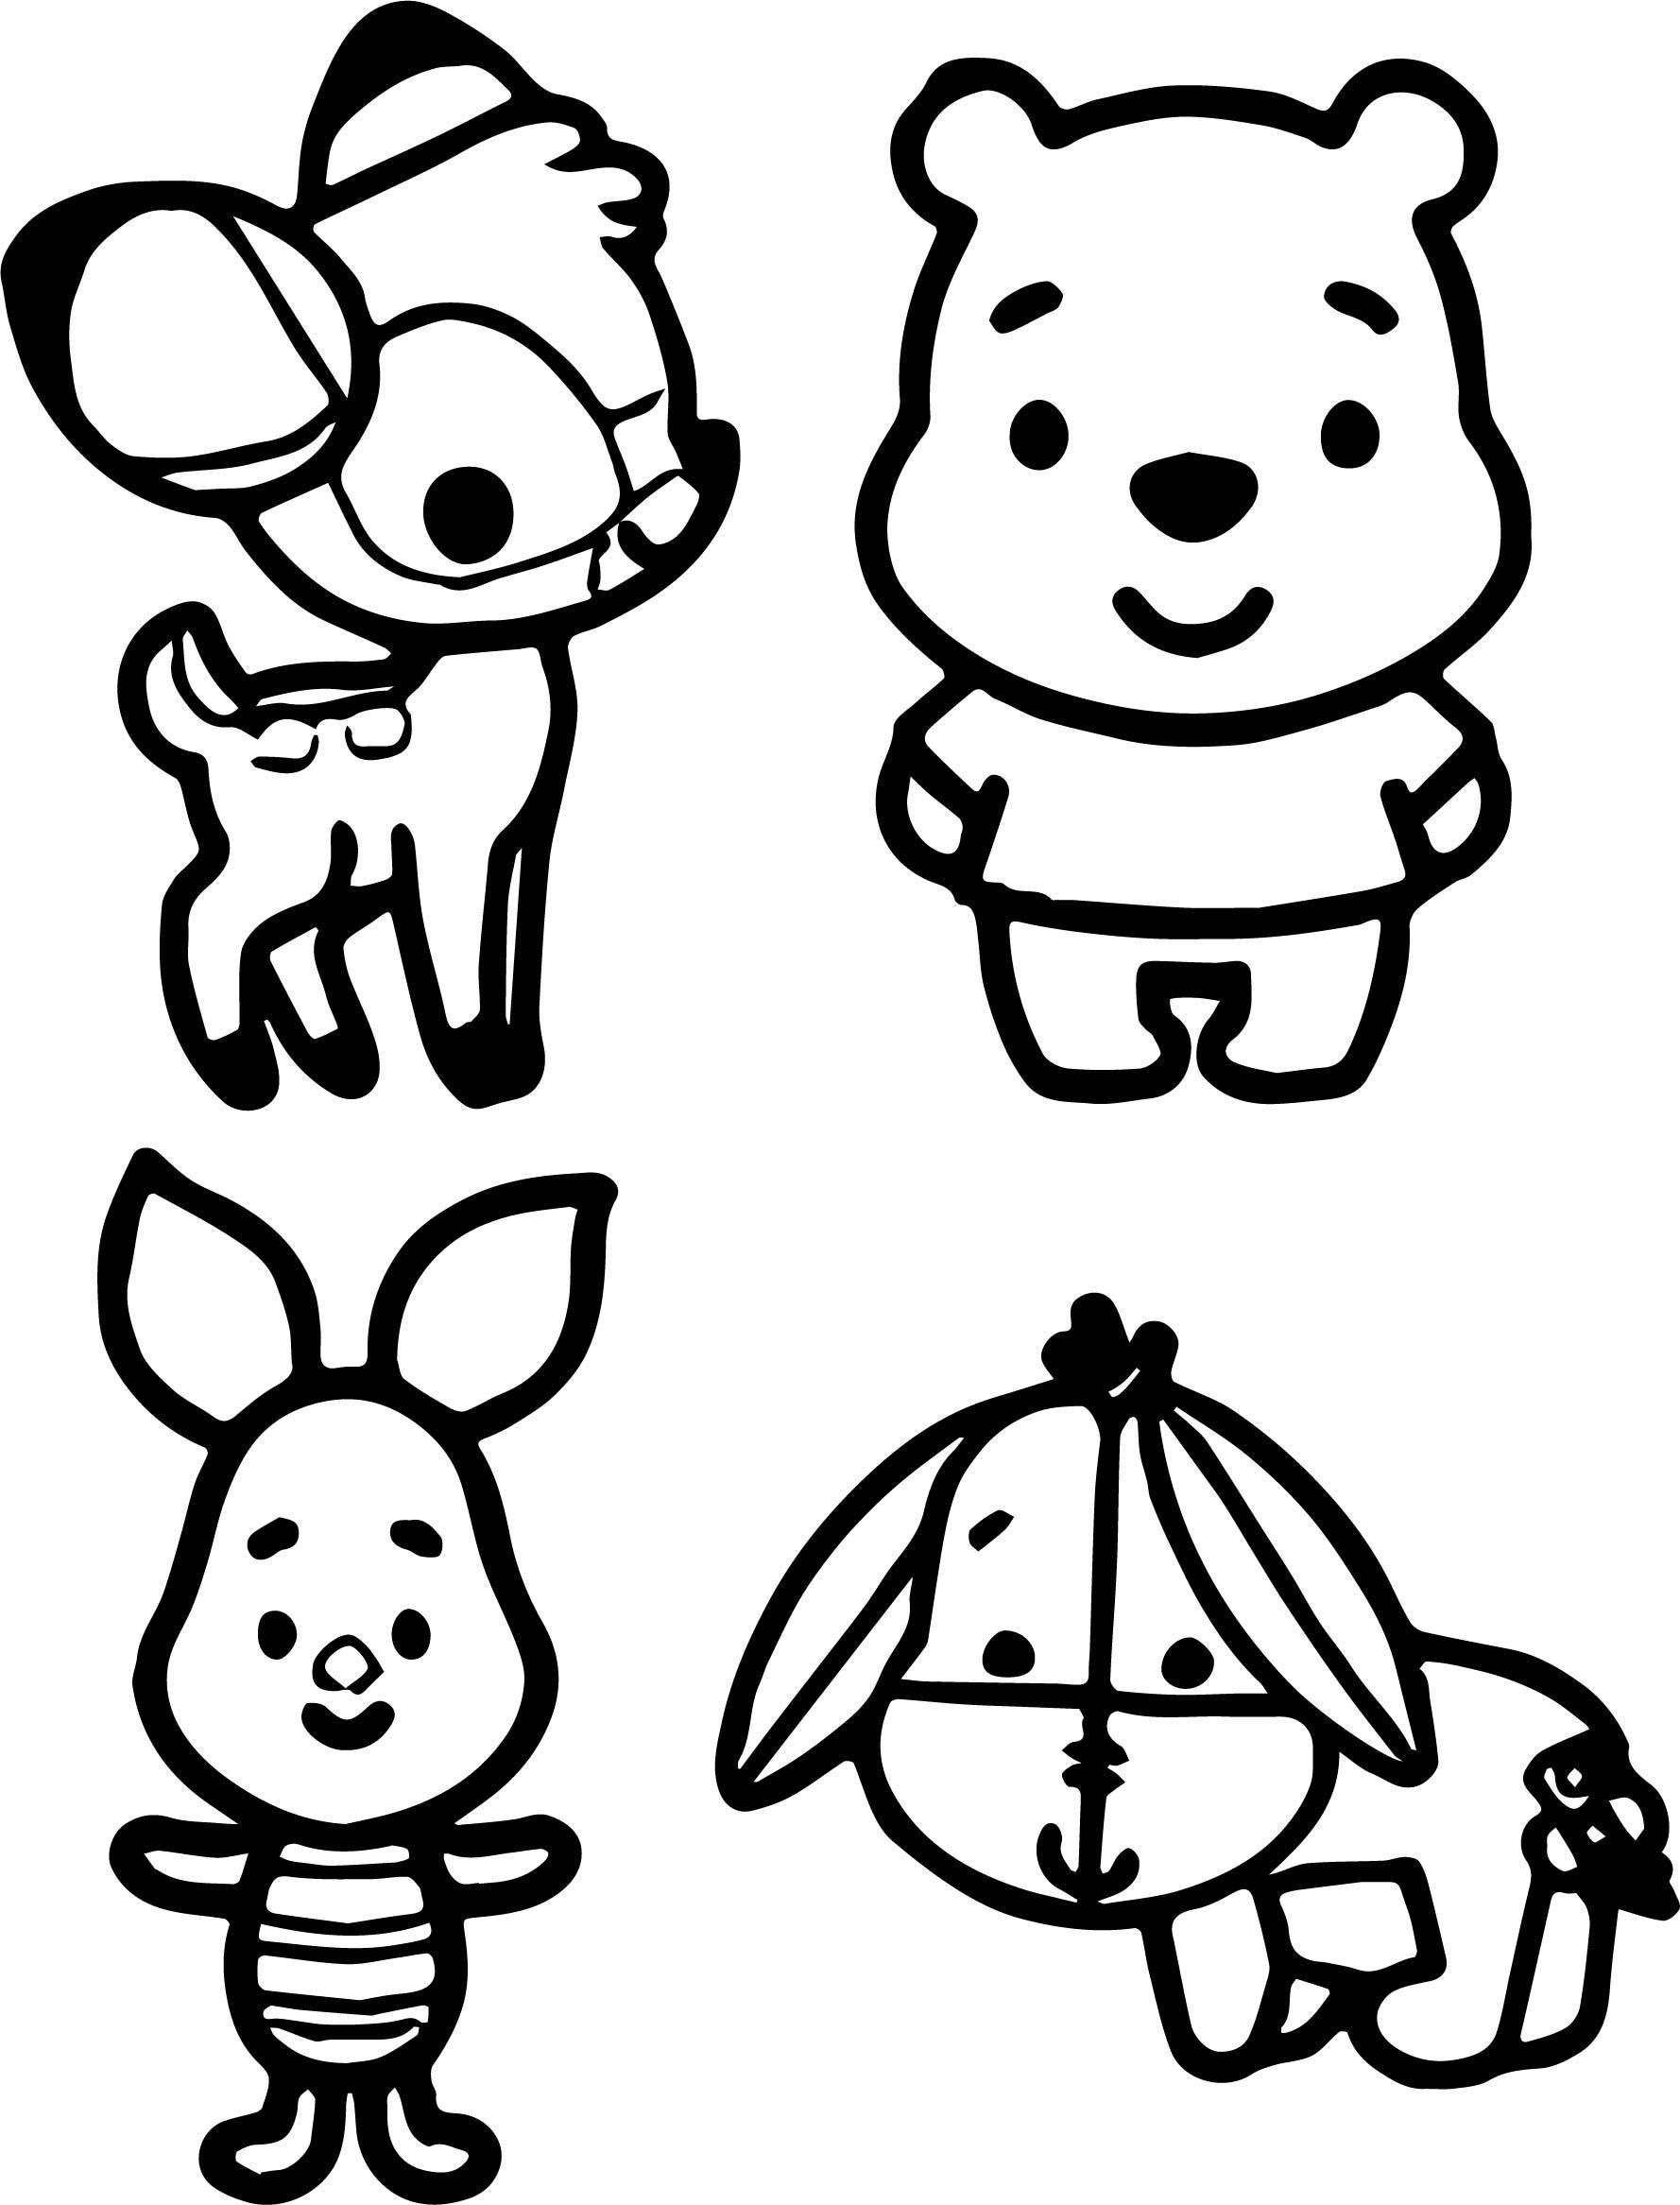 Disney Cute Coloring Pages Coloring Pages Winnie The Pooh Coloring Disney Sheets In 2020 Winnie The Pooh Drawing Baby Coloring Pages Disney Coloring Pages